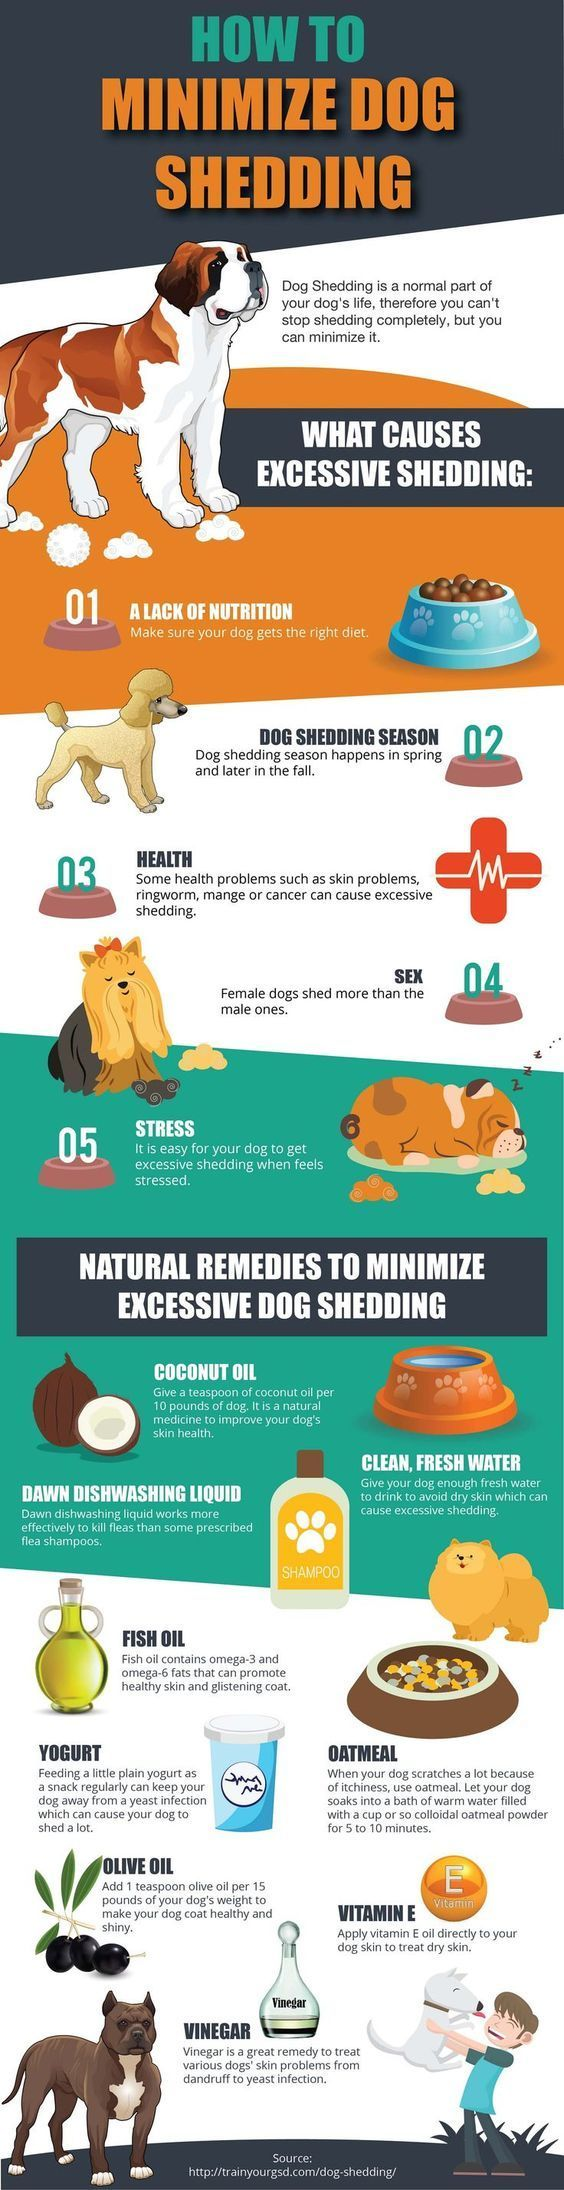 9 Ways To Reduce Dog Shedding - Infographic // KaufmannsPuppyTraining.com // Kaufmann's Puppy Training // dog training // dog love // puppy love //